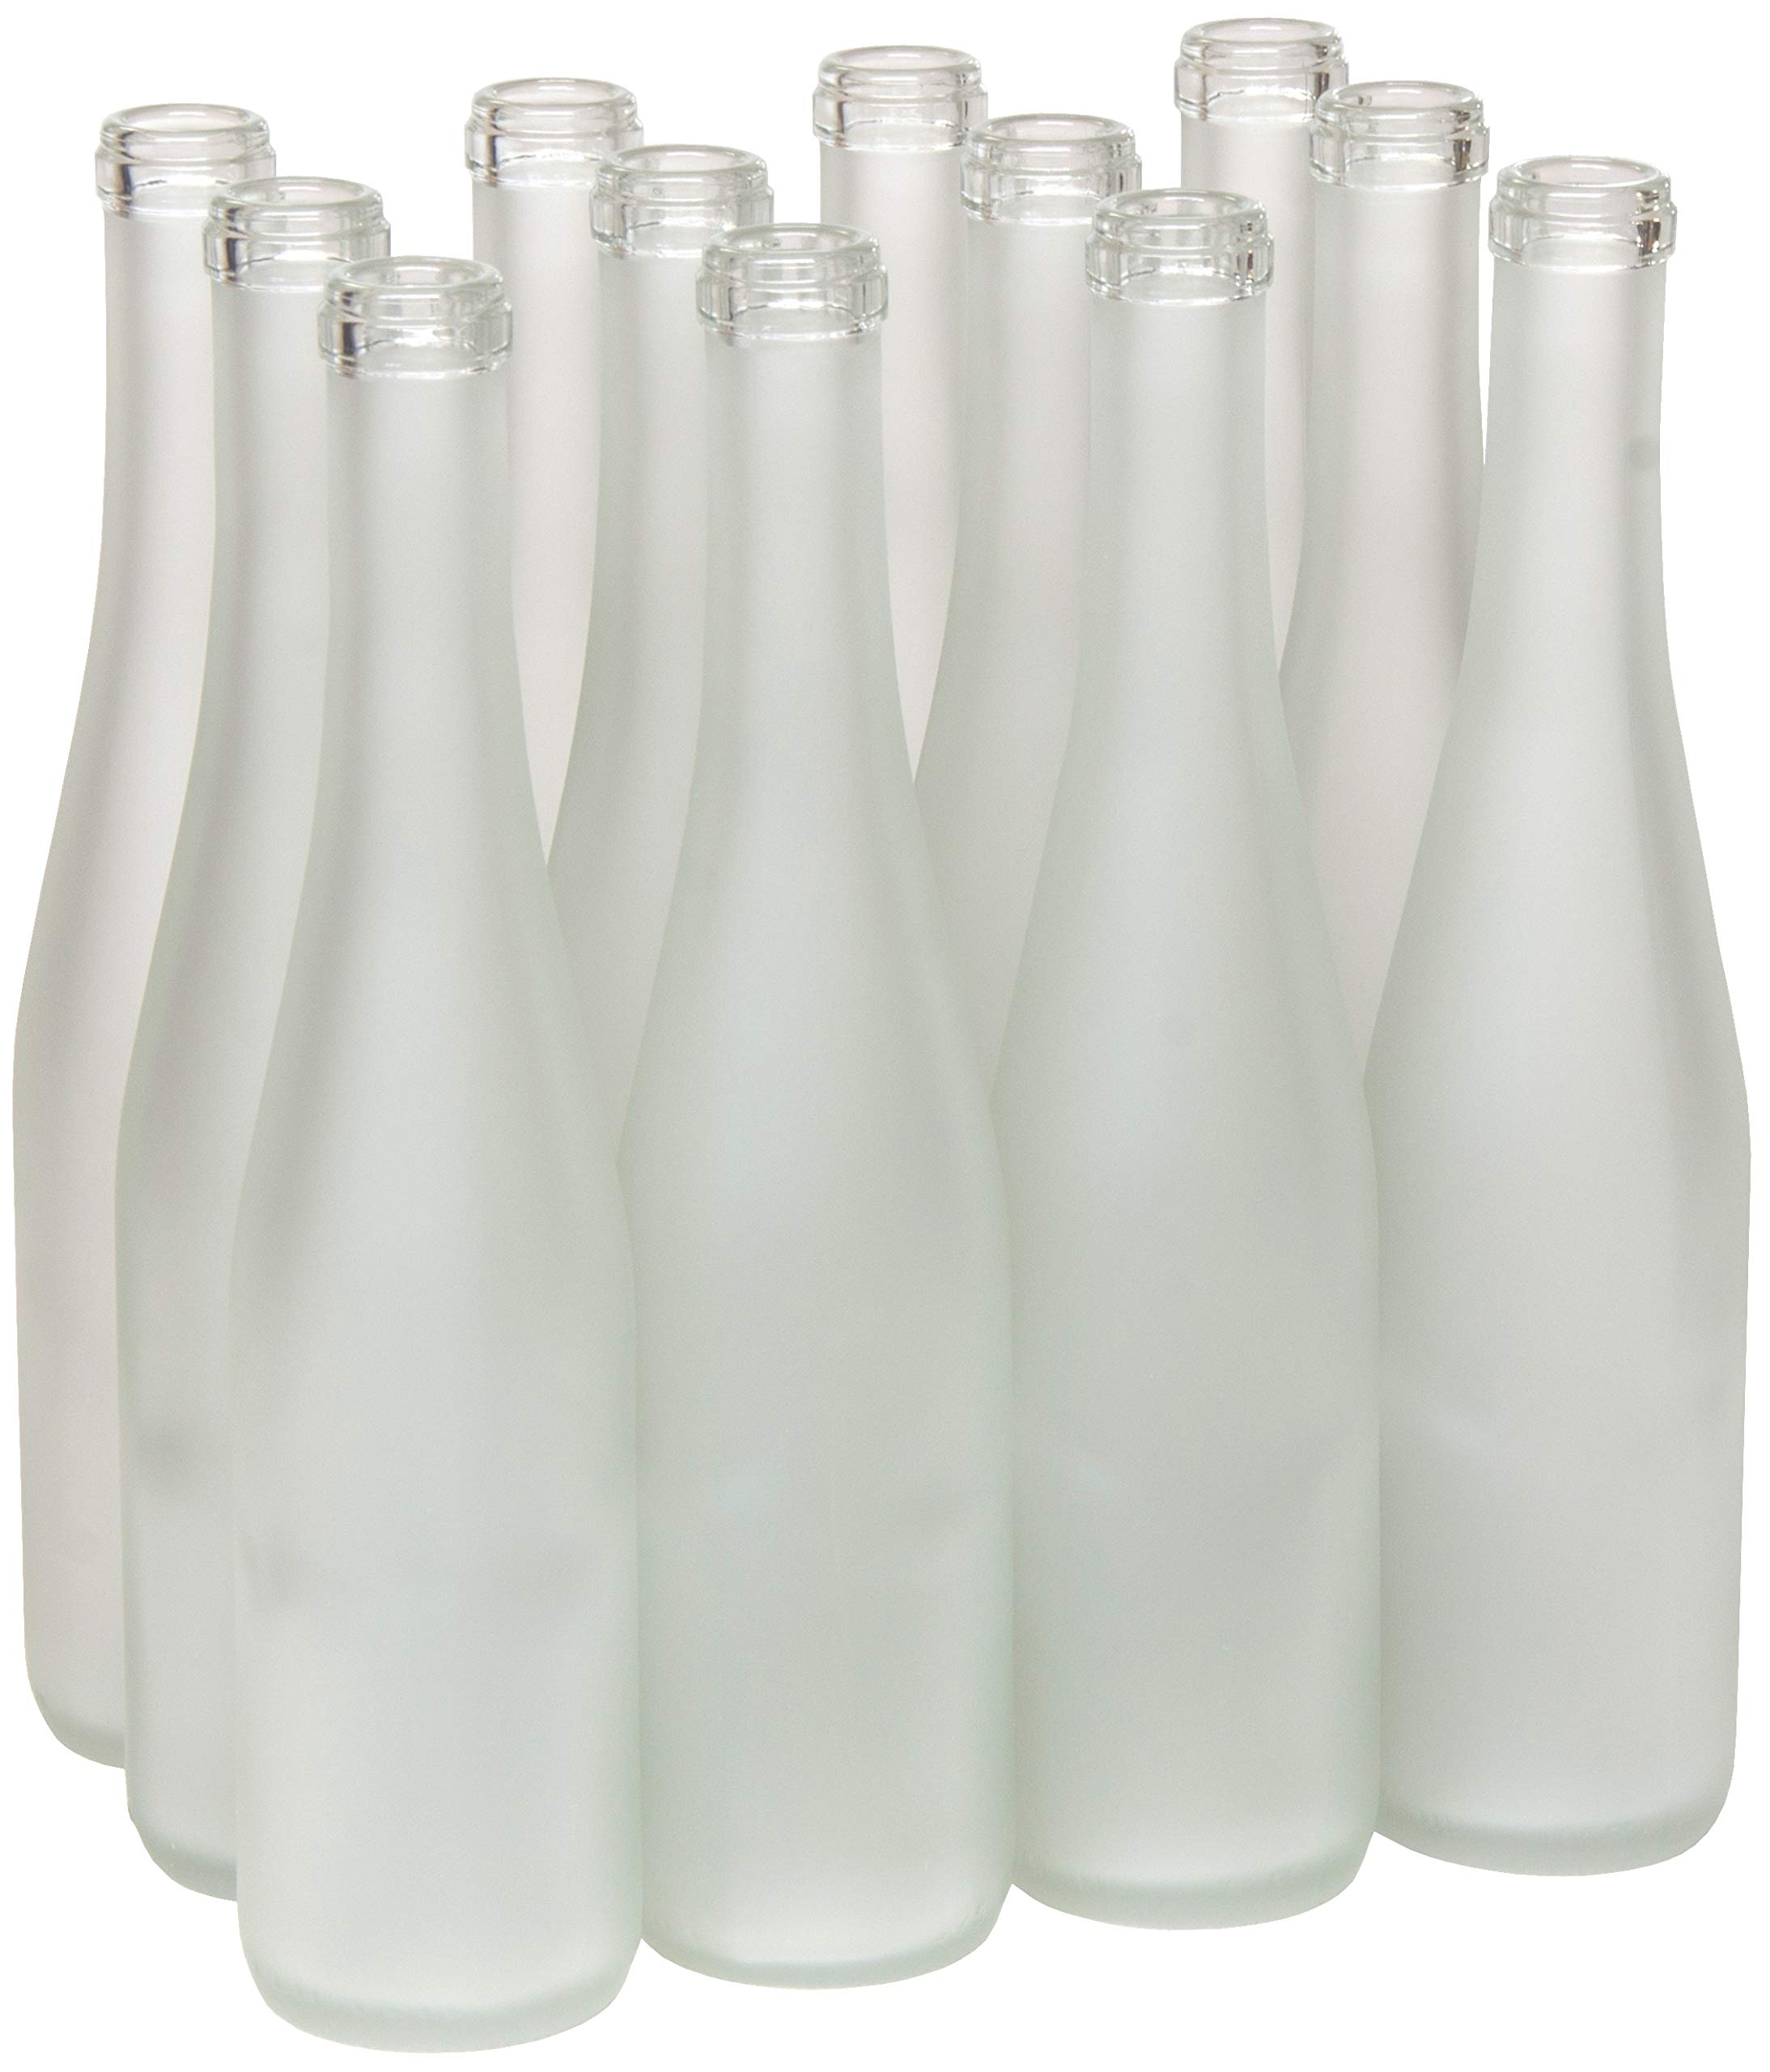 North Mountain Supply 375ml Frosted Glass Stretch Hock Wine Bottle Flat-Bottomed Cork Finish - Case of 12